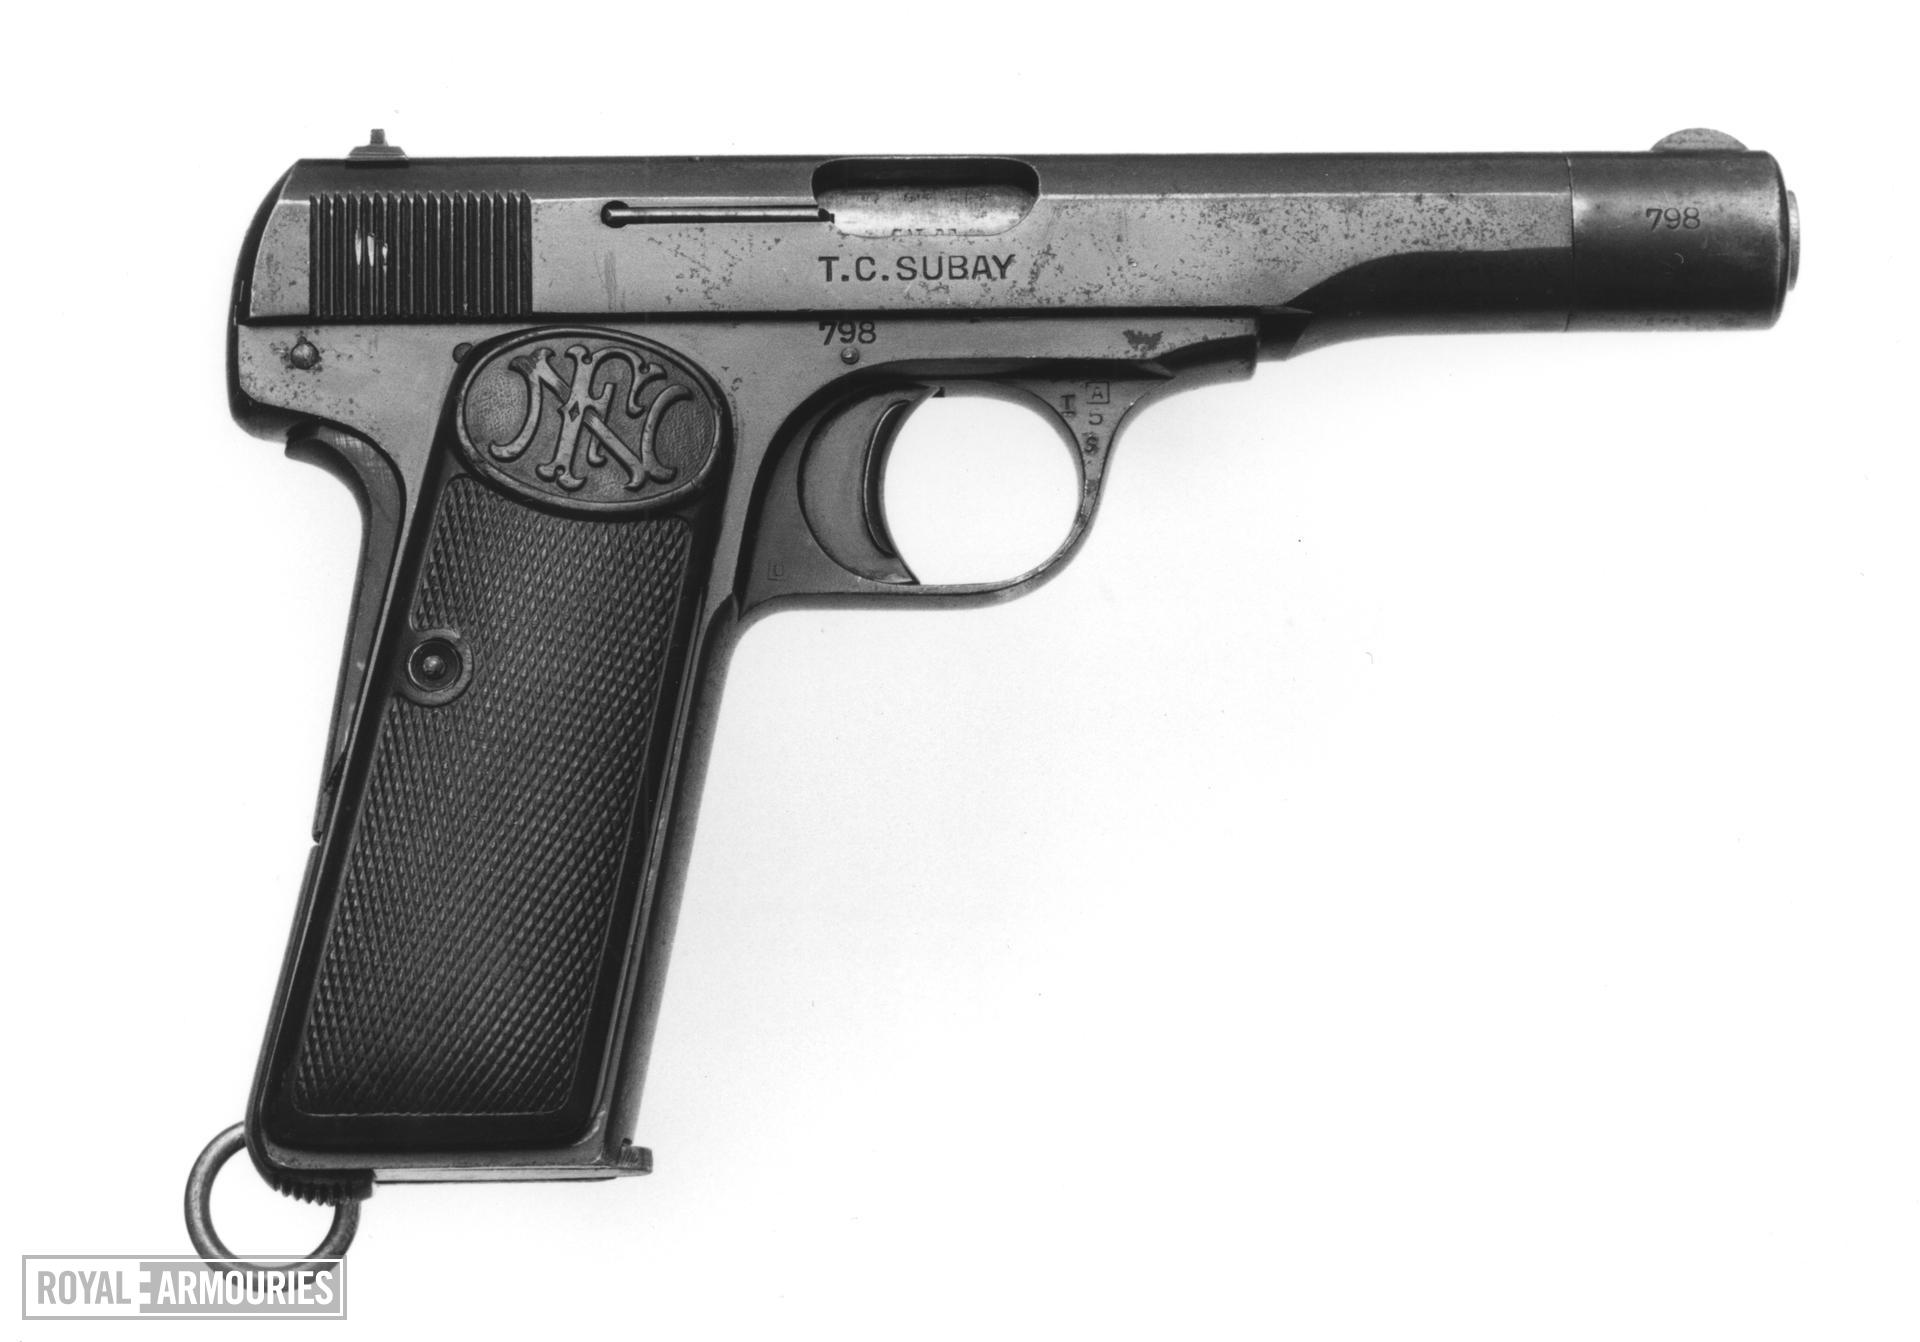 Centrefire self-loading pistol - Browning Model 1910/22